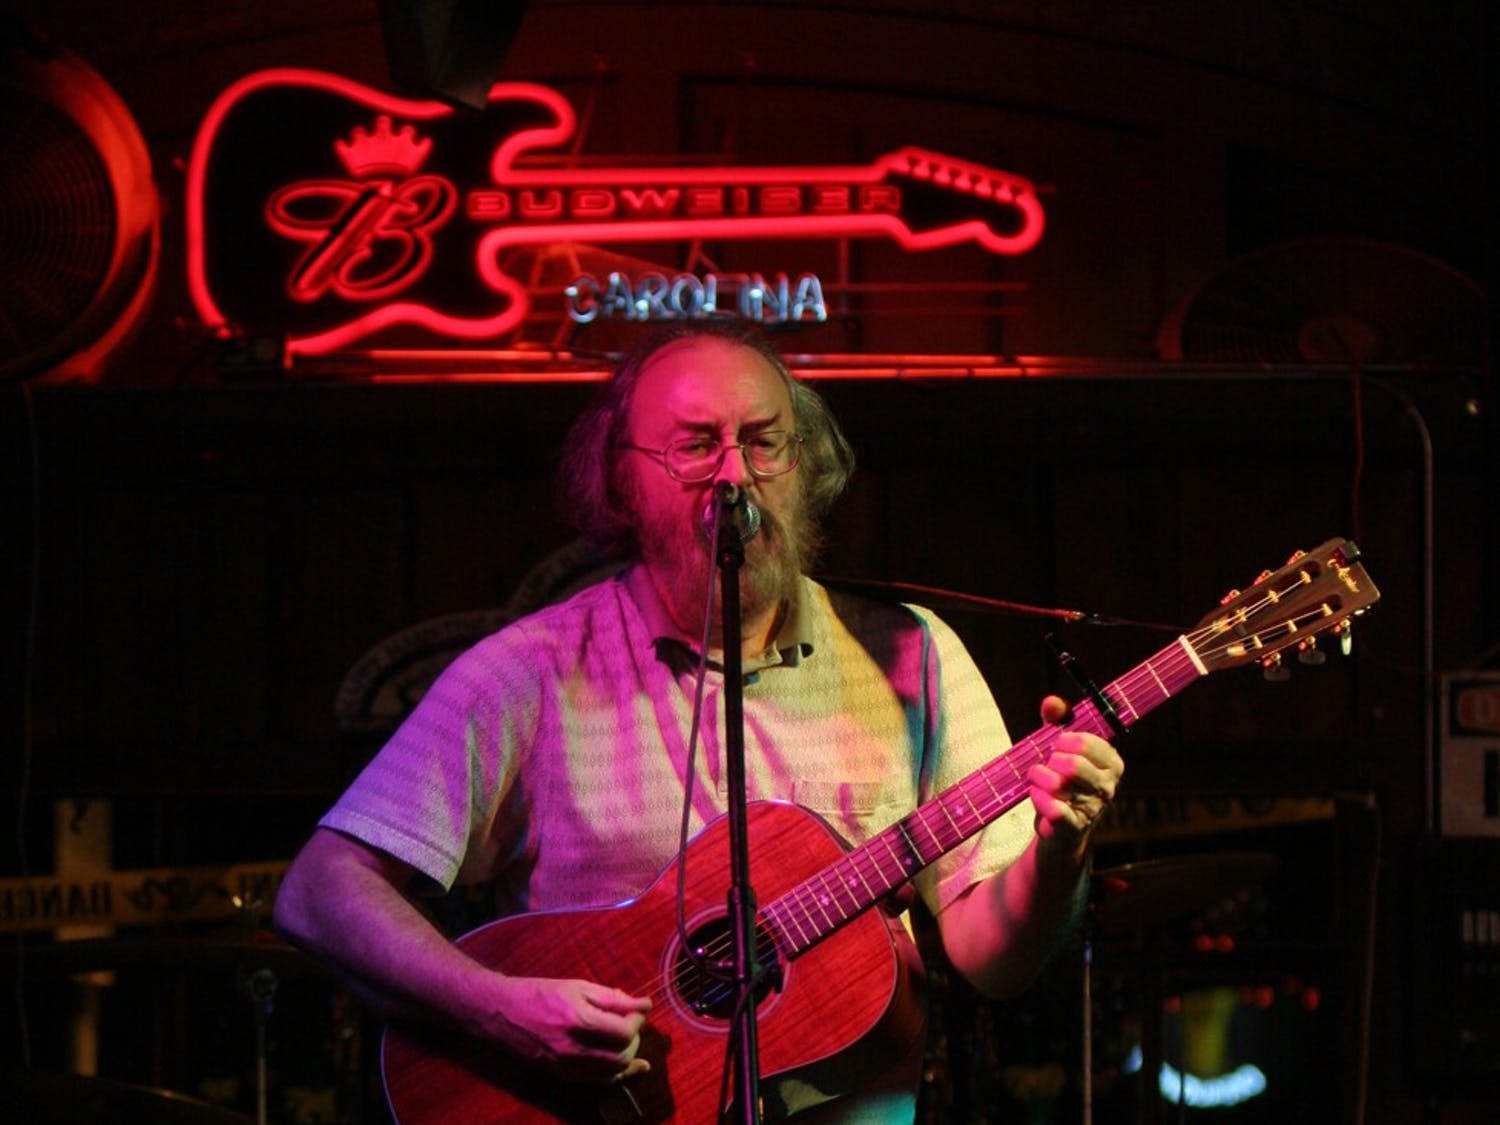 Whit Price plays a short set at Tuesday night's Open Mic with Bill West,  a new feature at Katy at the Bayou in Hillsborough. Previously known as the Blue Bayou Club, the new bar plans to expand its entertainmen